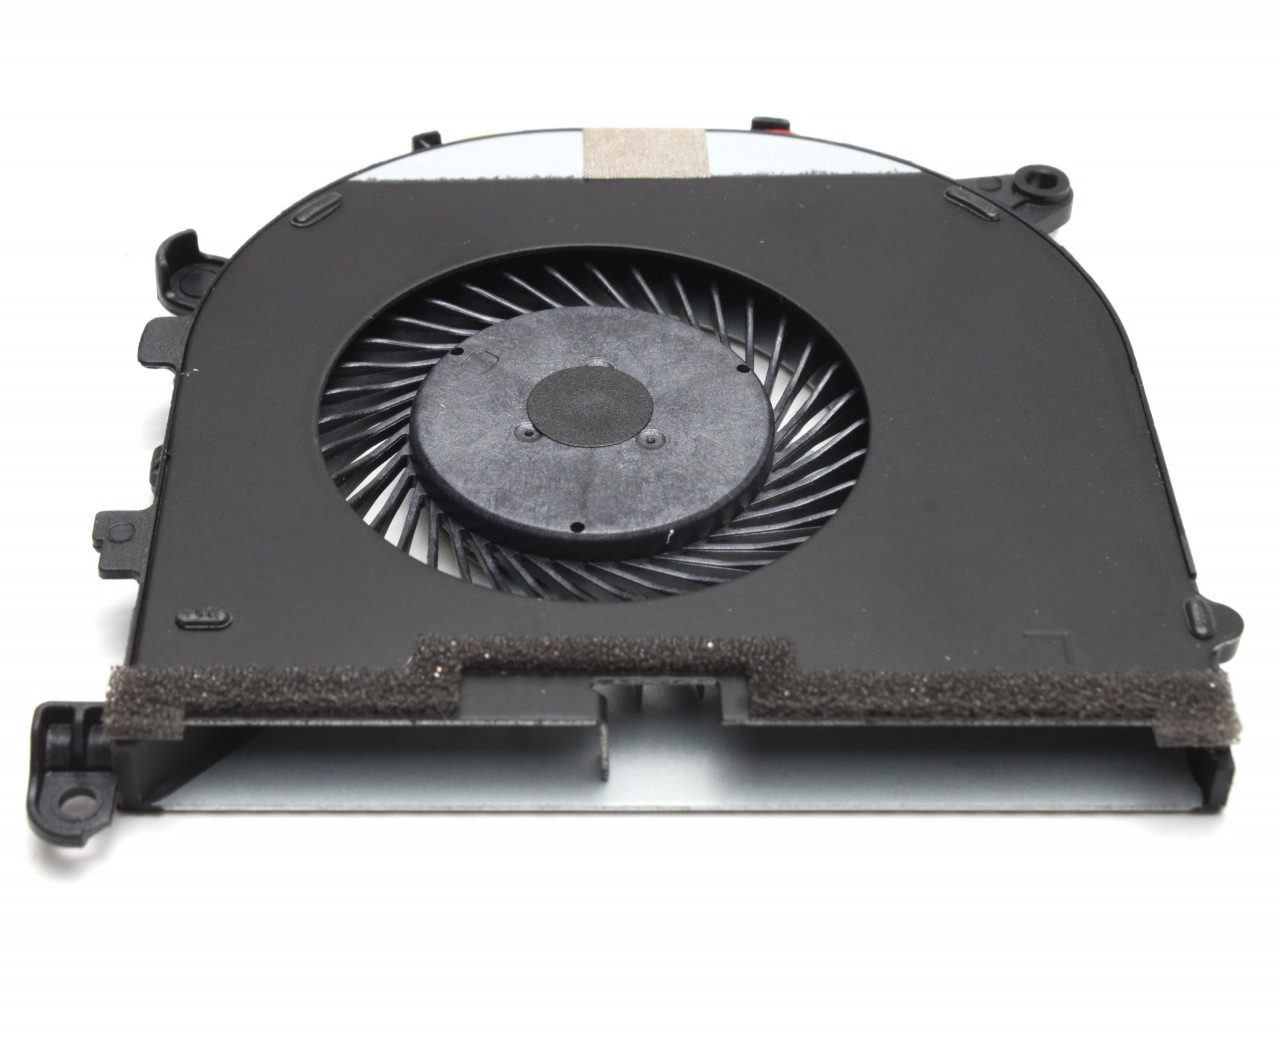 Cooler laptop Dell XPS 15 9530 Stanga imagine powerlaptop.ro 2021